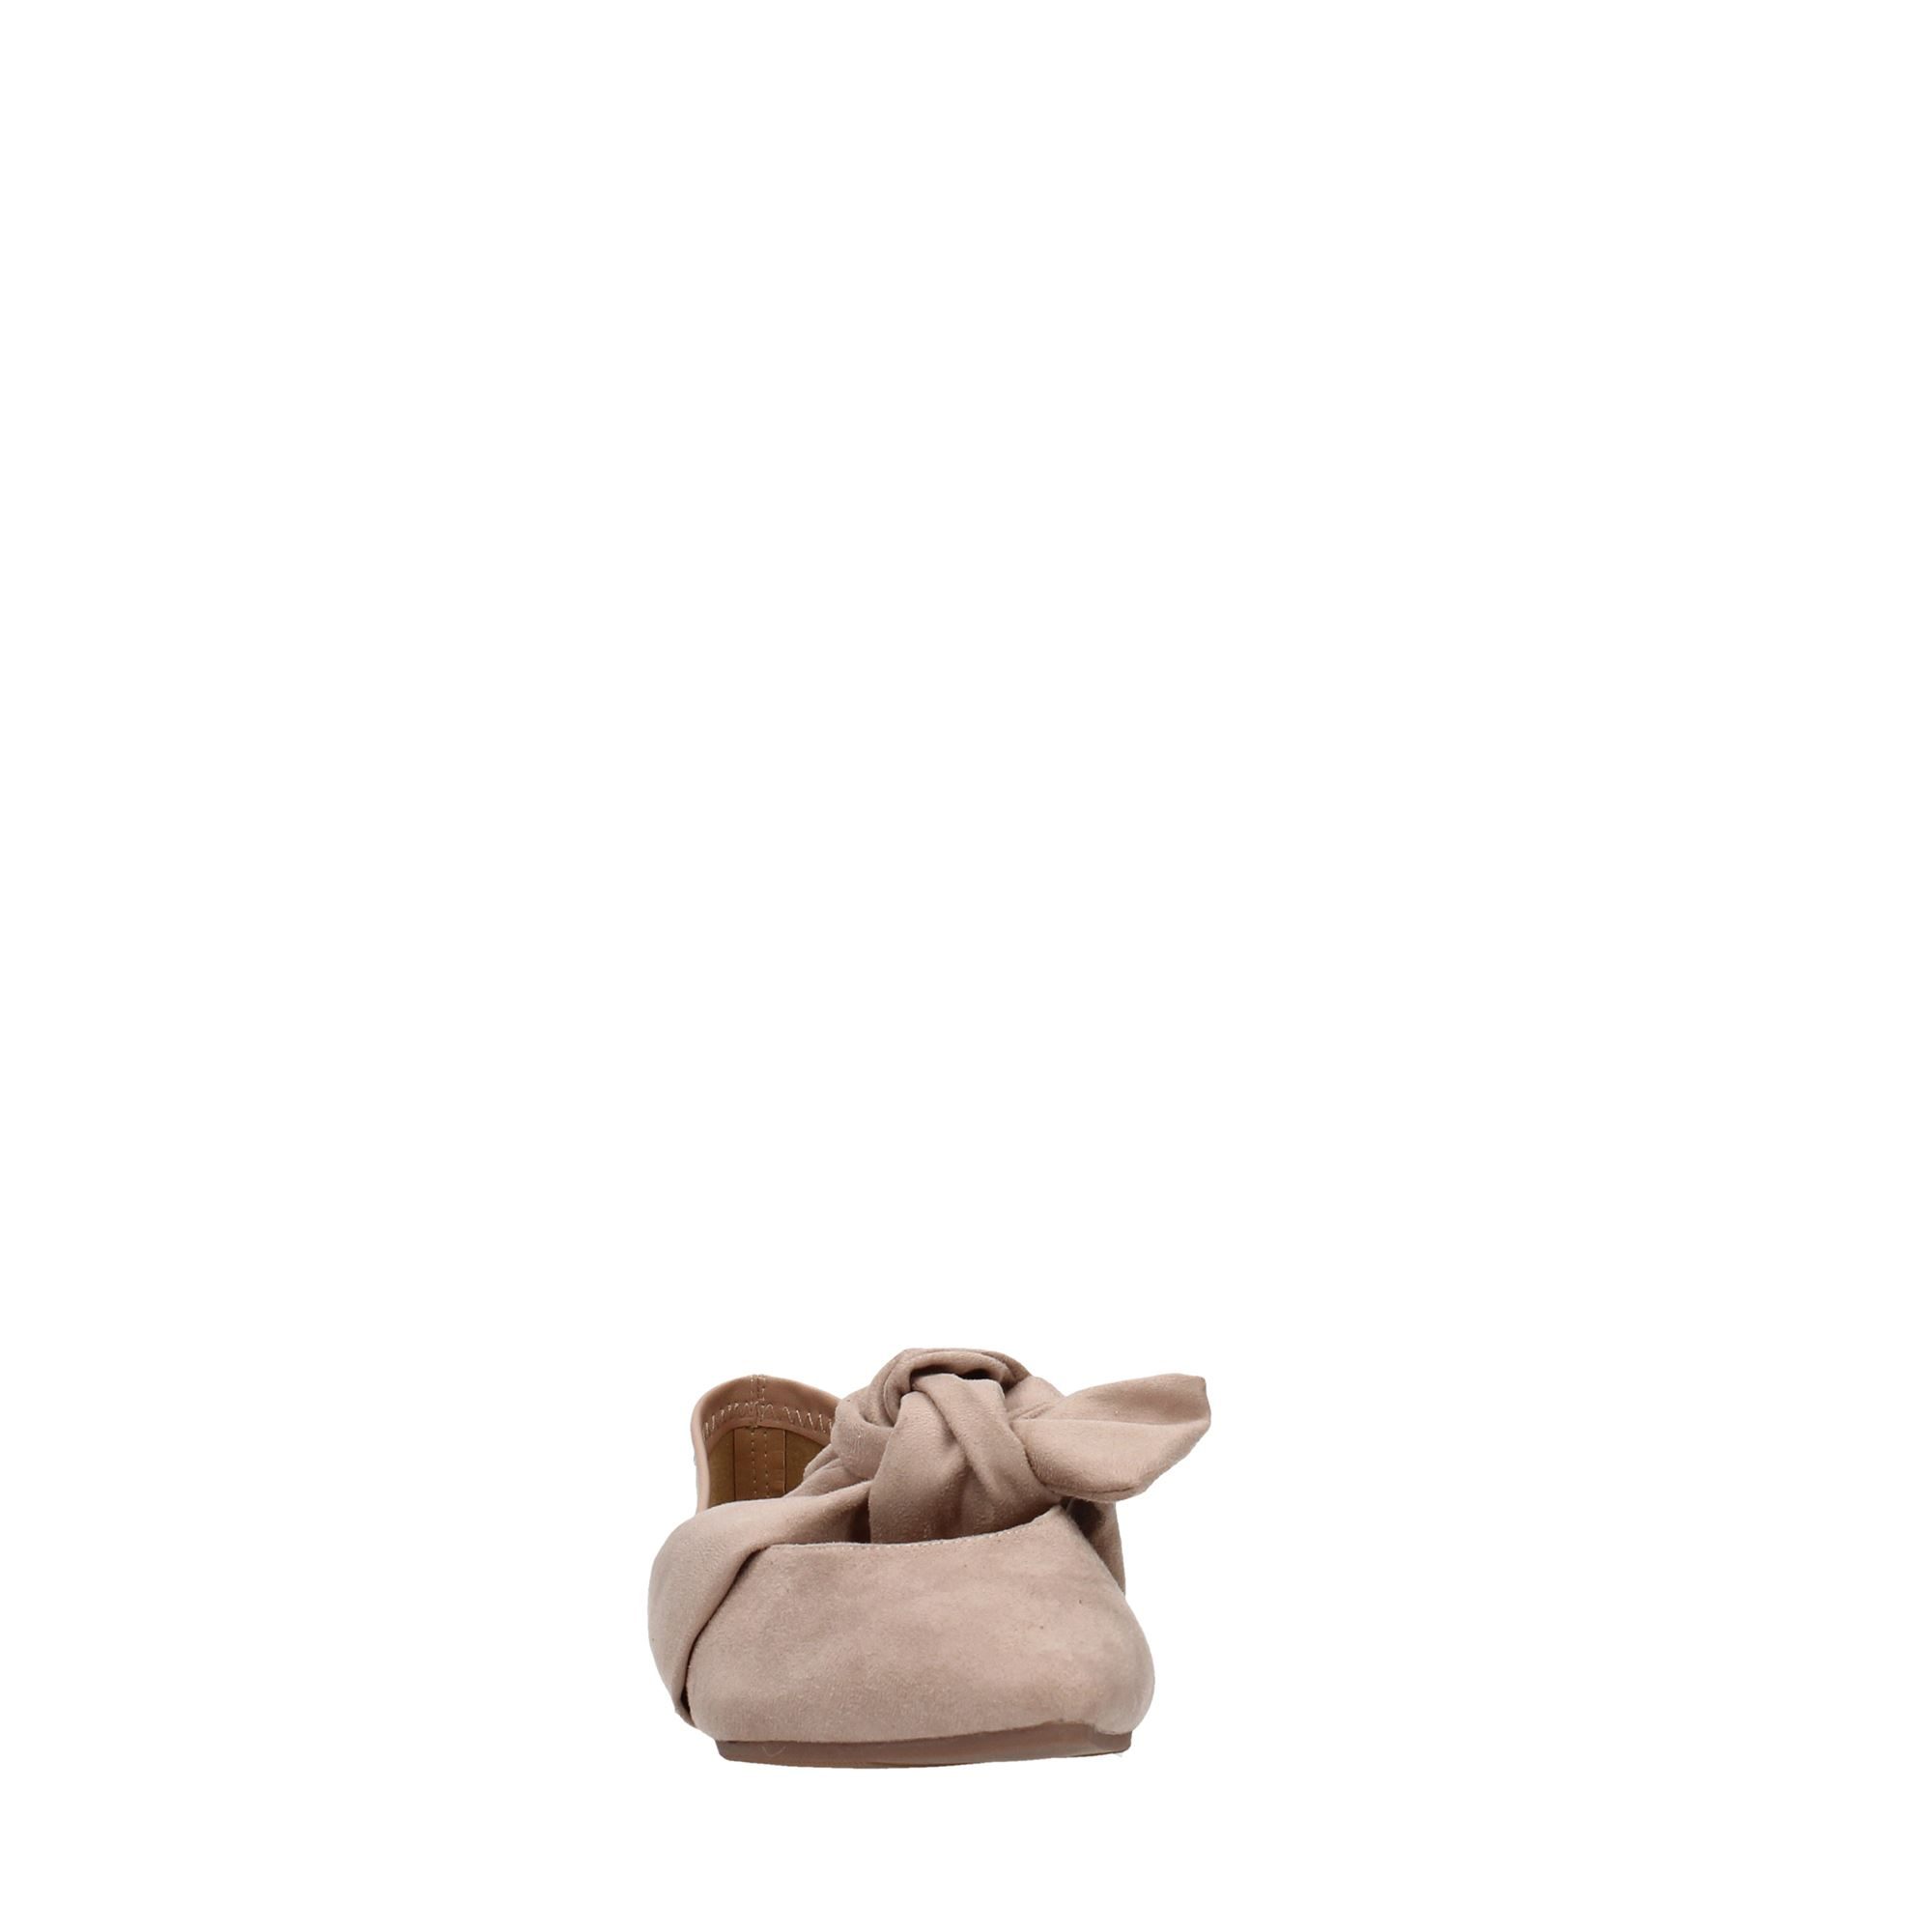 Tata Italia Shoes Woman Ballerine Nude 9141A-105-Z